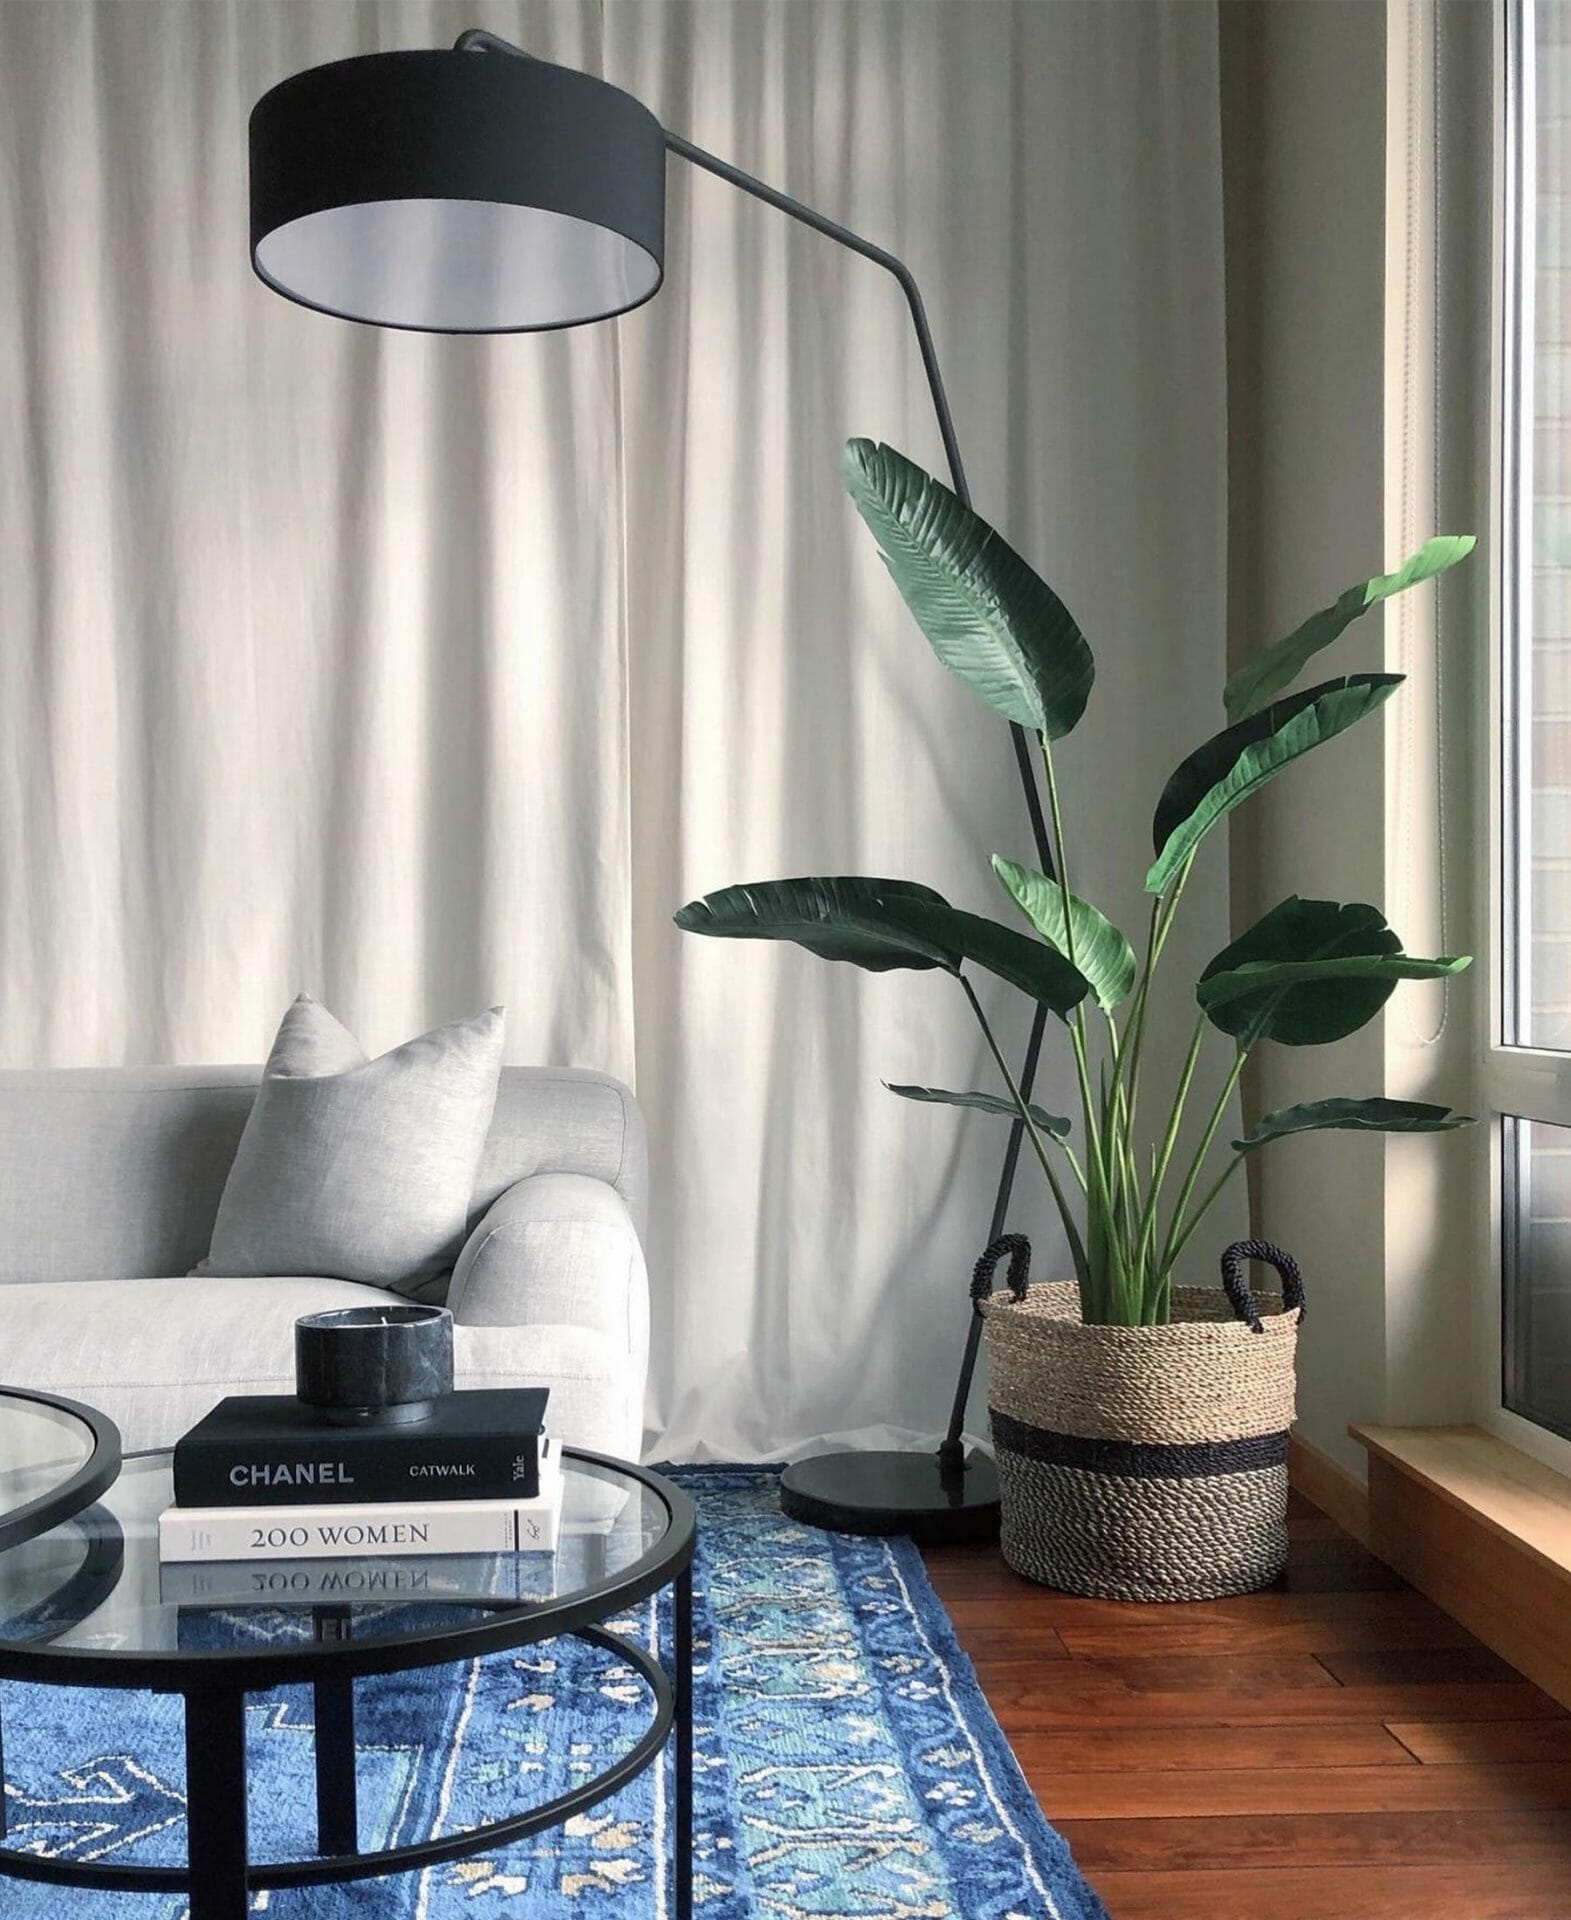 Eclectic Prodigy's living room features a bright blue rug, white sofa, palm plant, and black Article floor lamp.